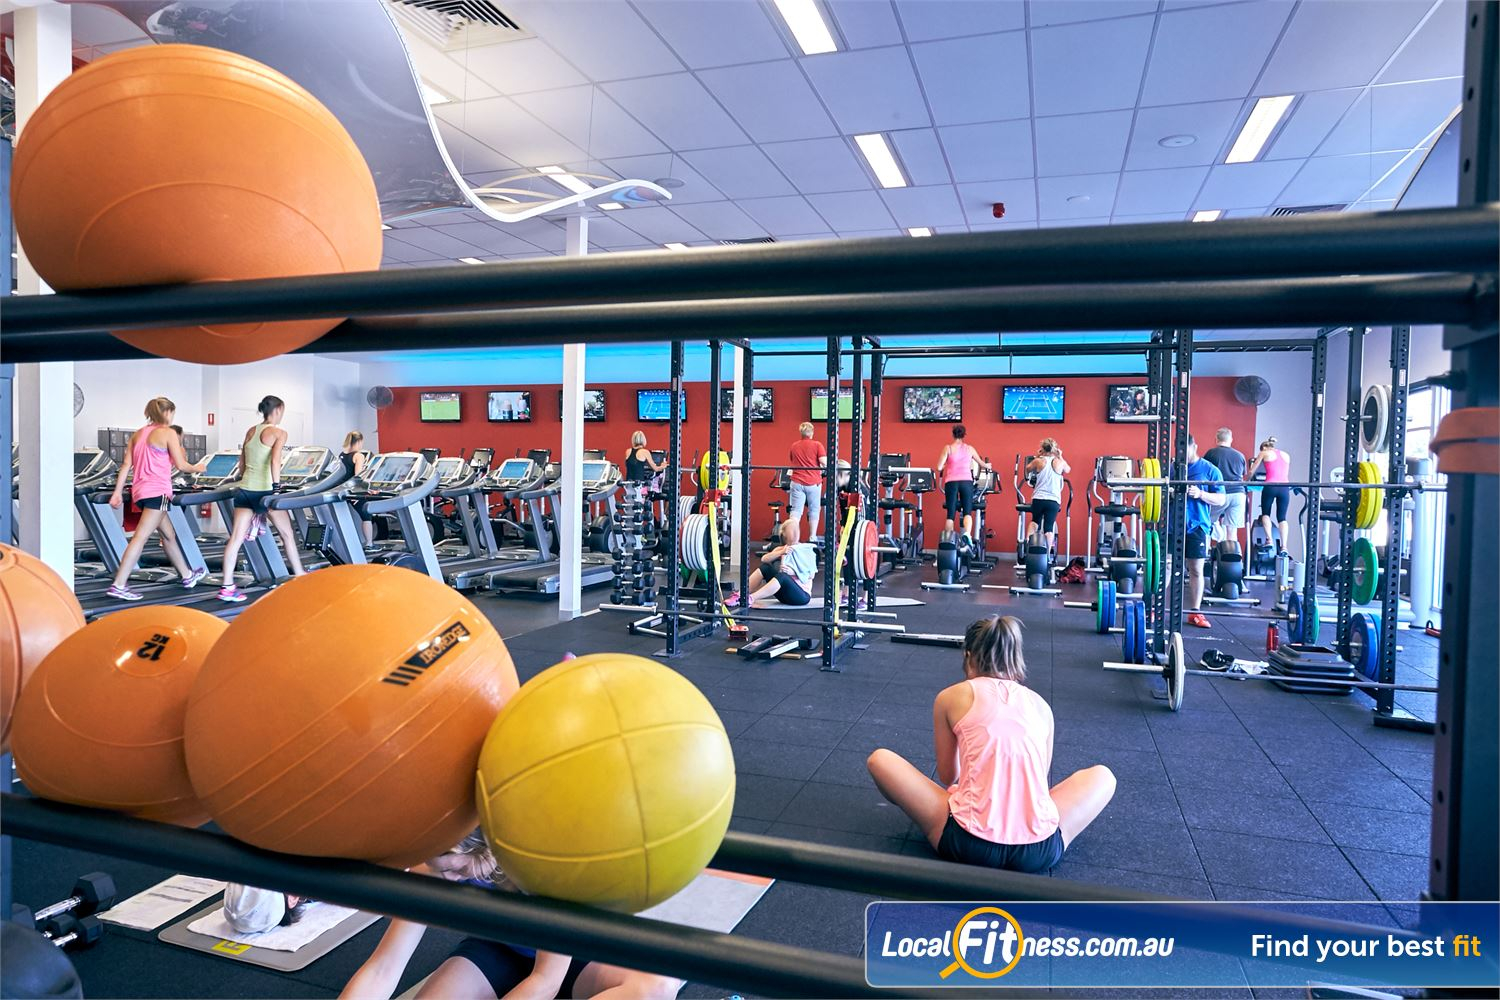 Goodlife Health Clubs Cross Roads Near Hawthorn Fully equipped functional training area at Goodlife Cross Roads gym.